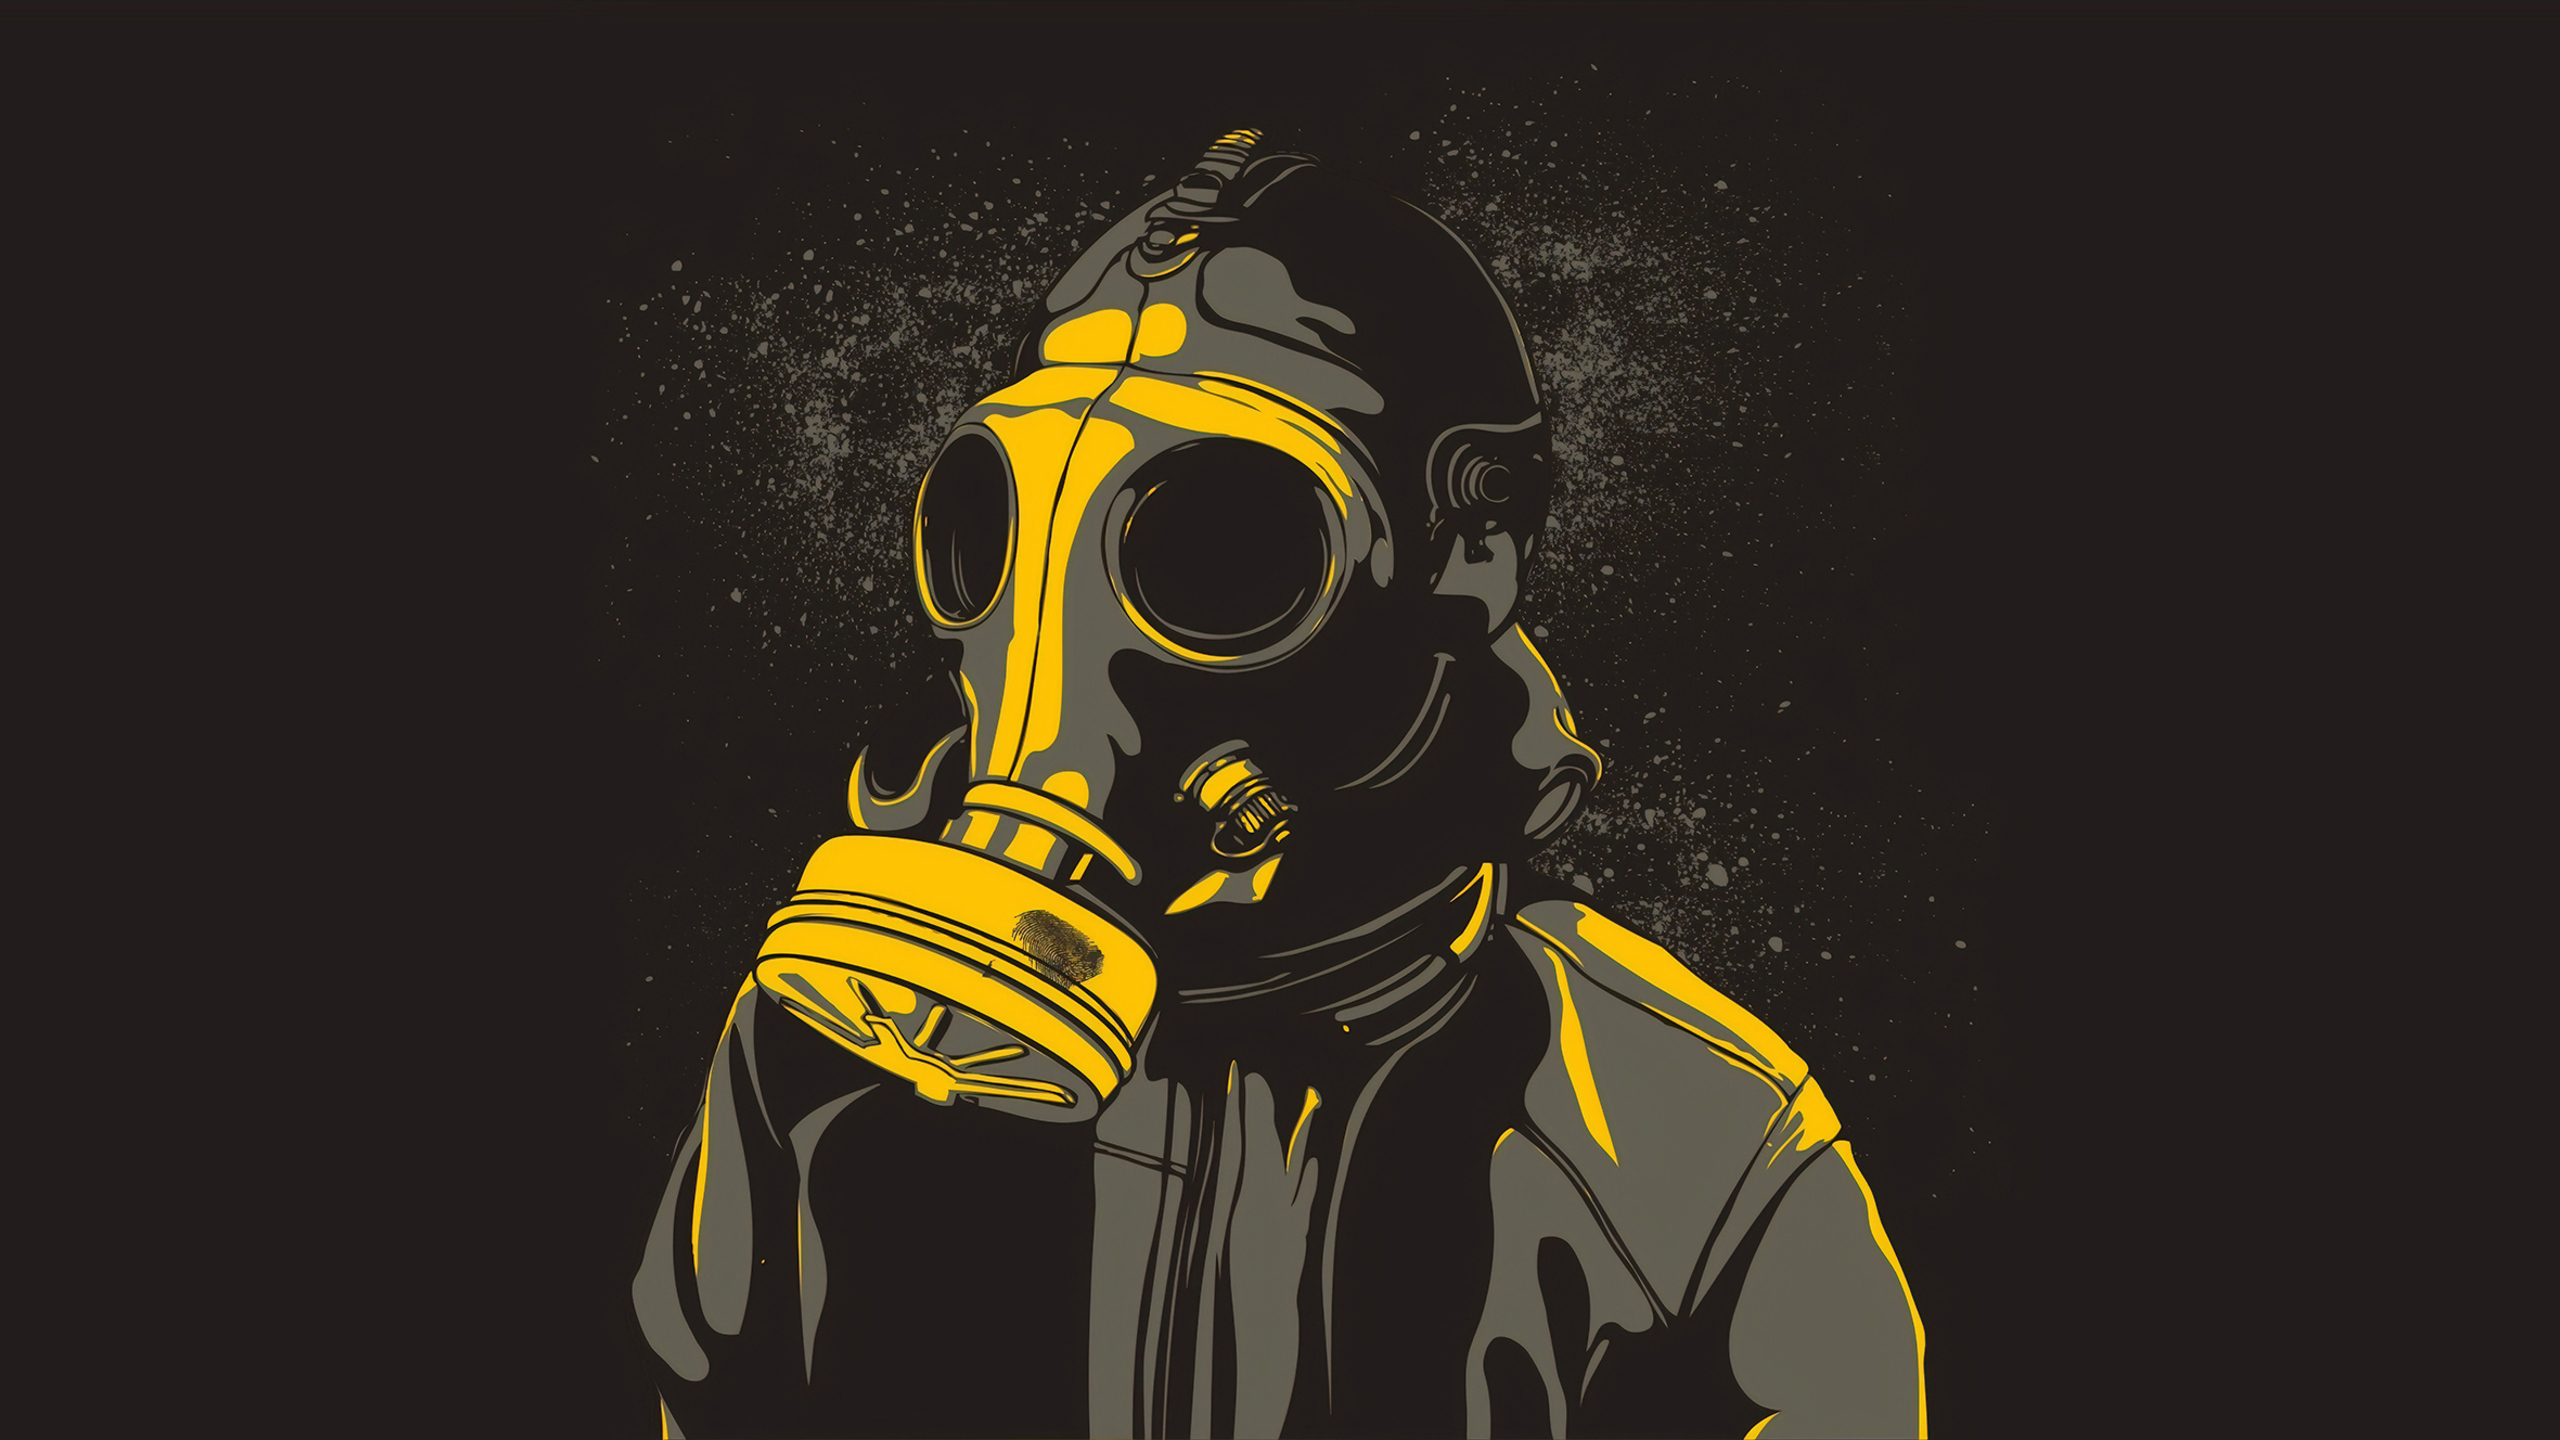 2560x1440 Gas Mask Guy 1440p Resolution Hd 4k Wallpapers